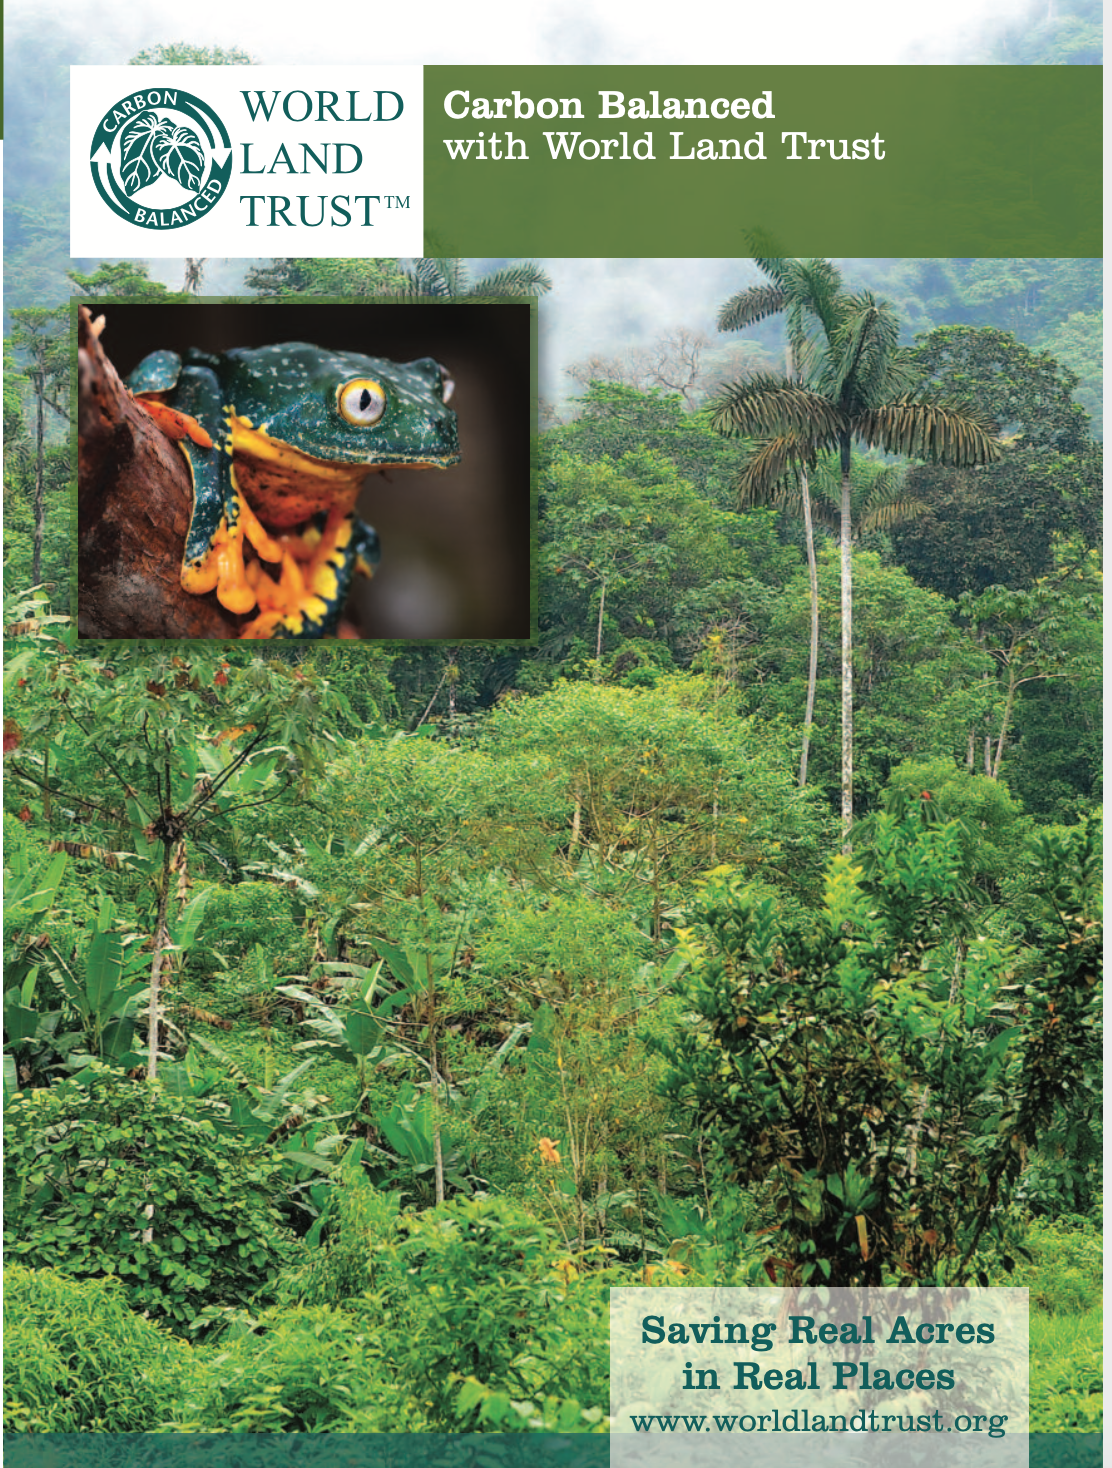 Above: Participating publishers will be able to printing the World Land Trust logo on the backs of greeting cards using the accredited boards.